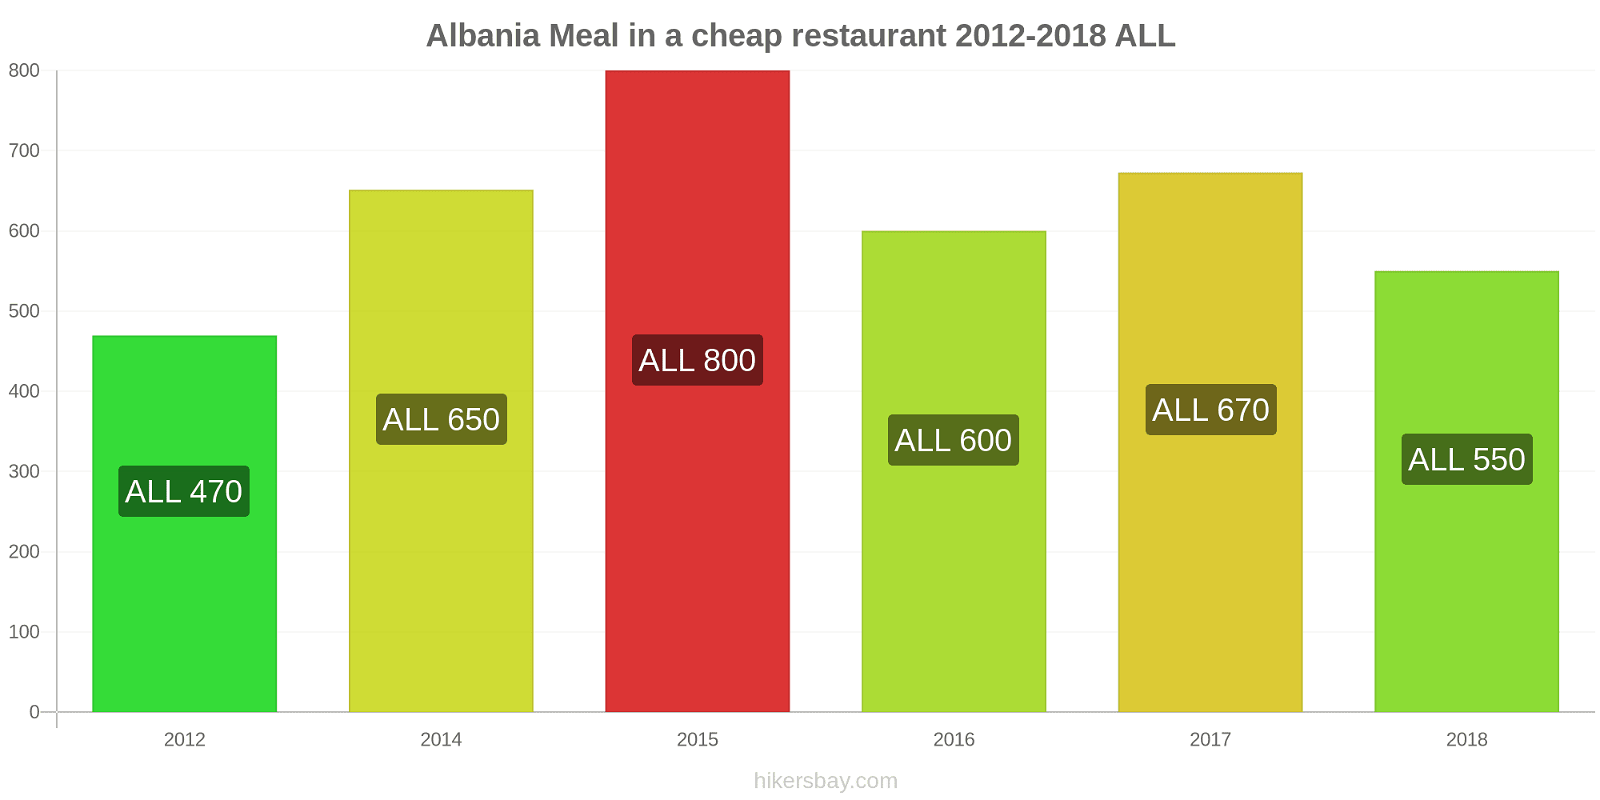 Albania price changes Meal in a cheap restaurant hikersbay.com